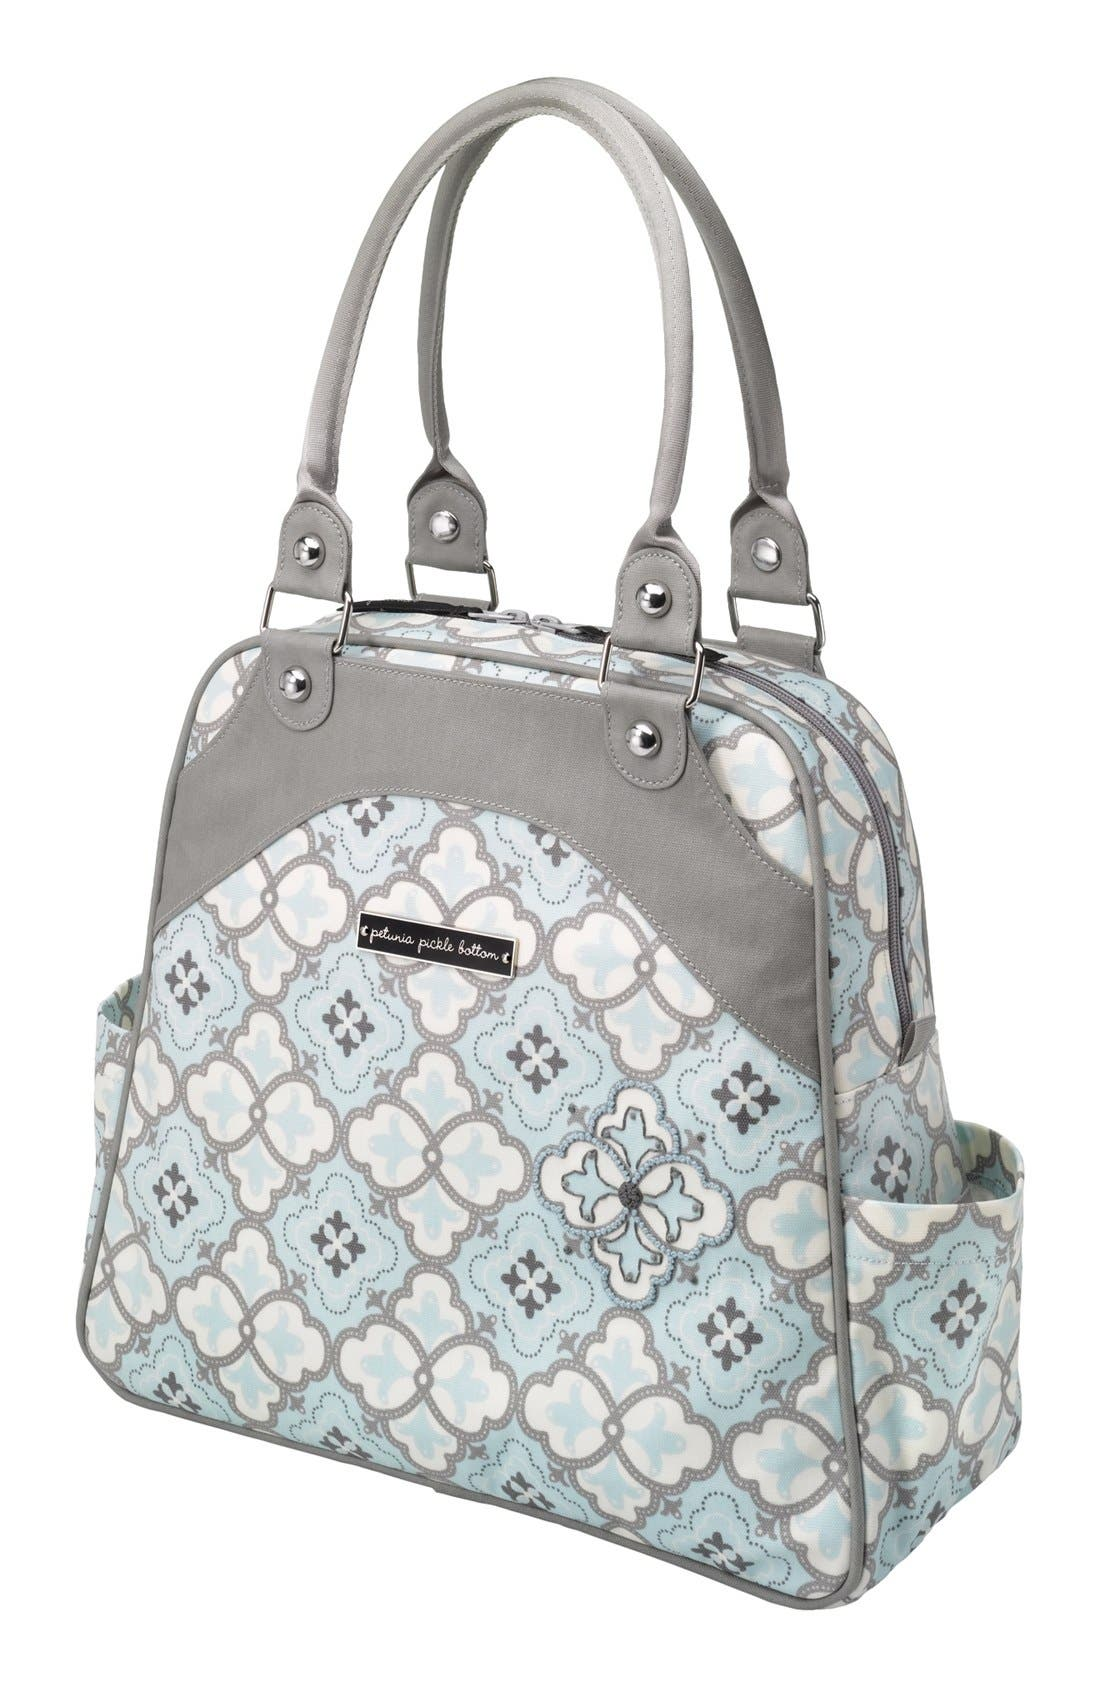 Alternate Image 1 Selected - Petunia Pickle Bottom 'Sashay Satchel' Glazed Diaper Bag